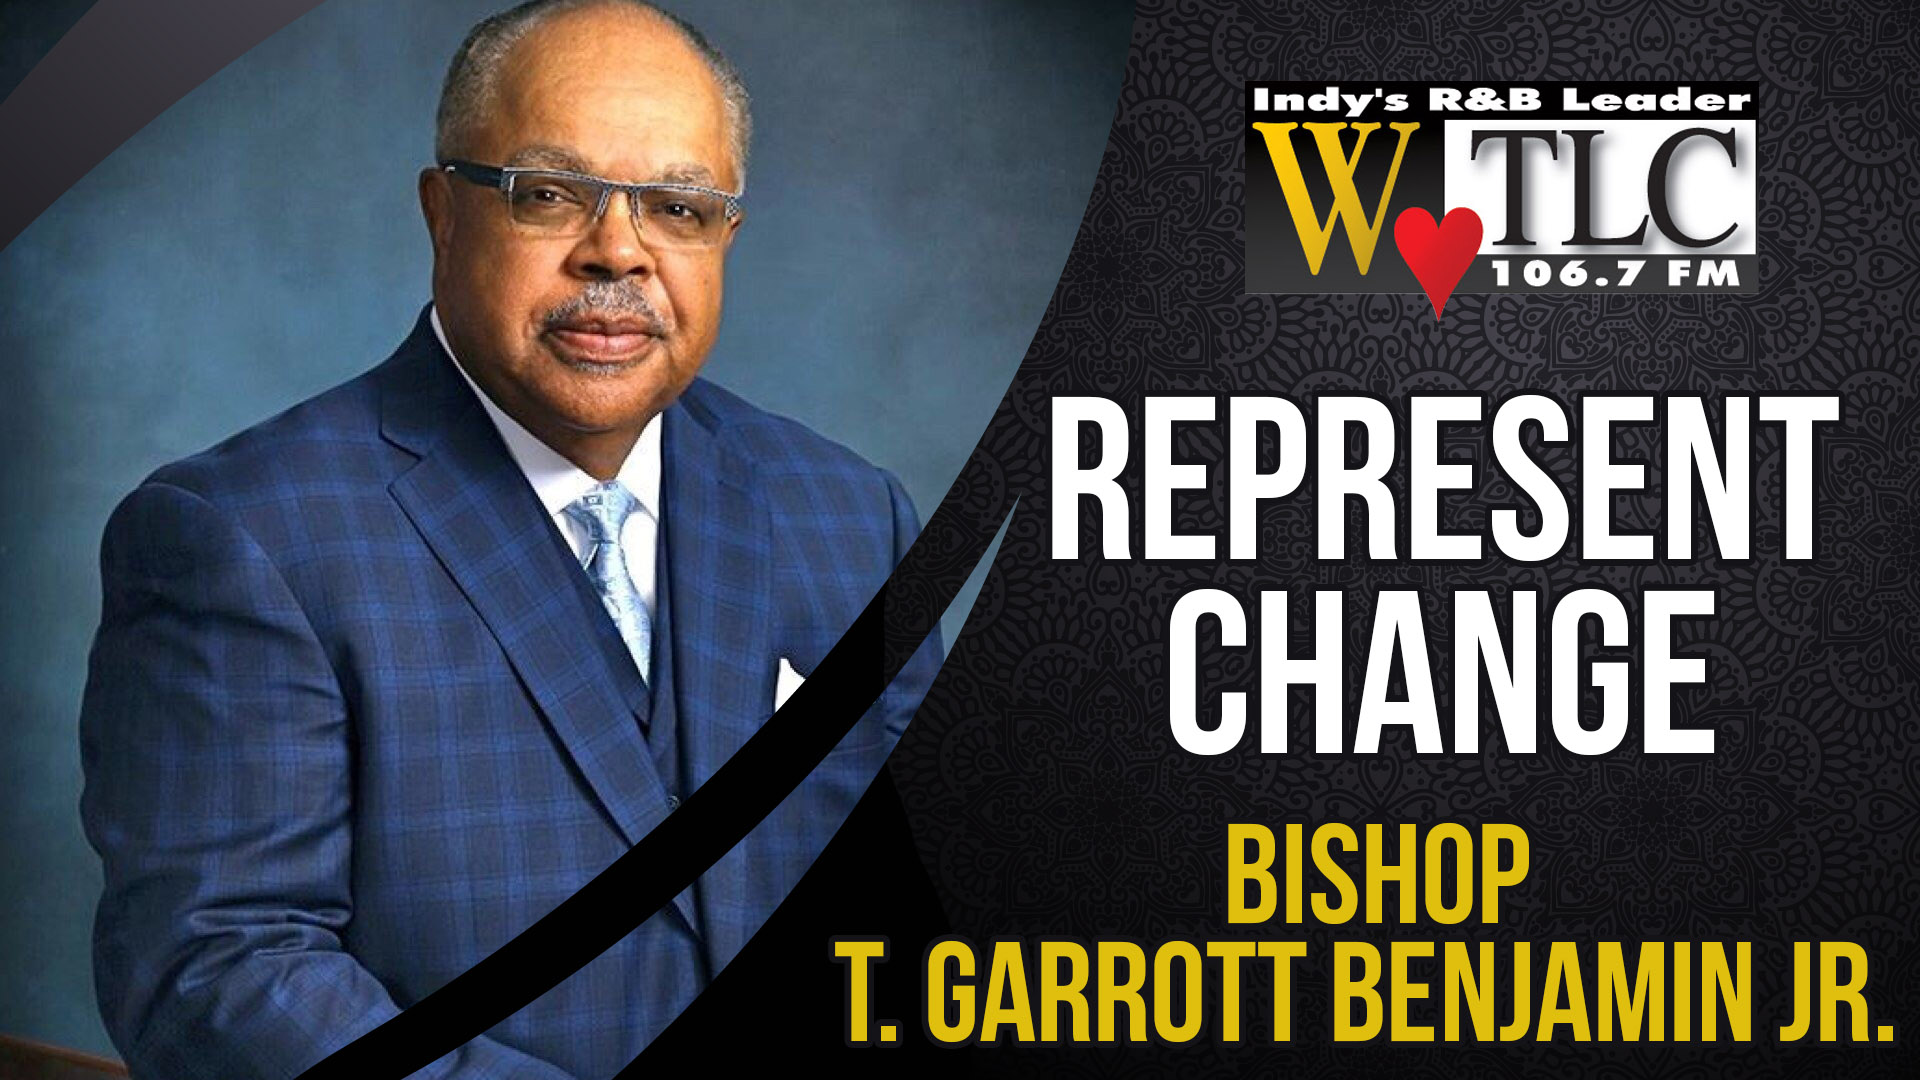 Represent Change: Bishop T. Garrott Benjamin Jr. (WTLC)